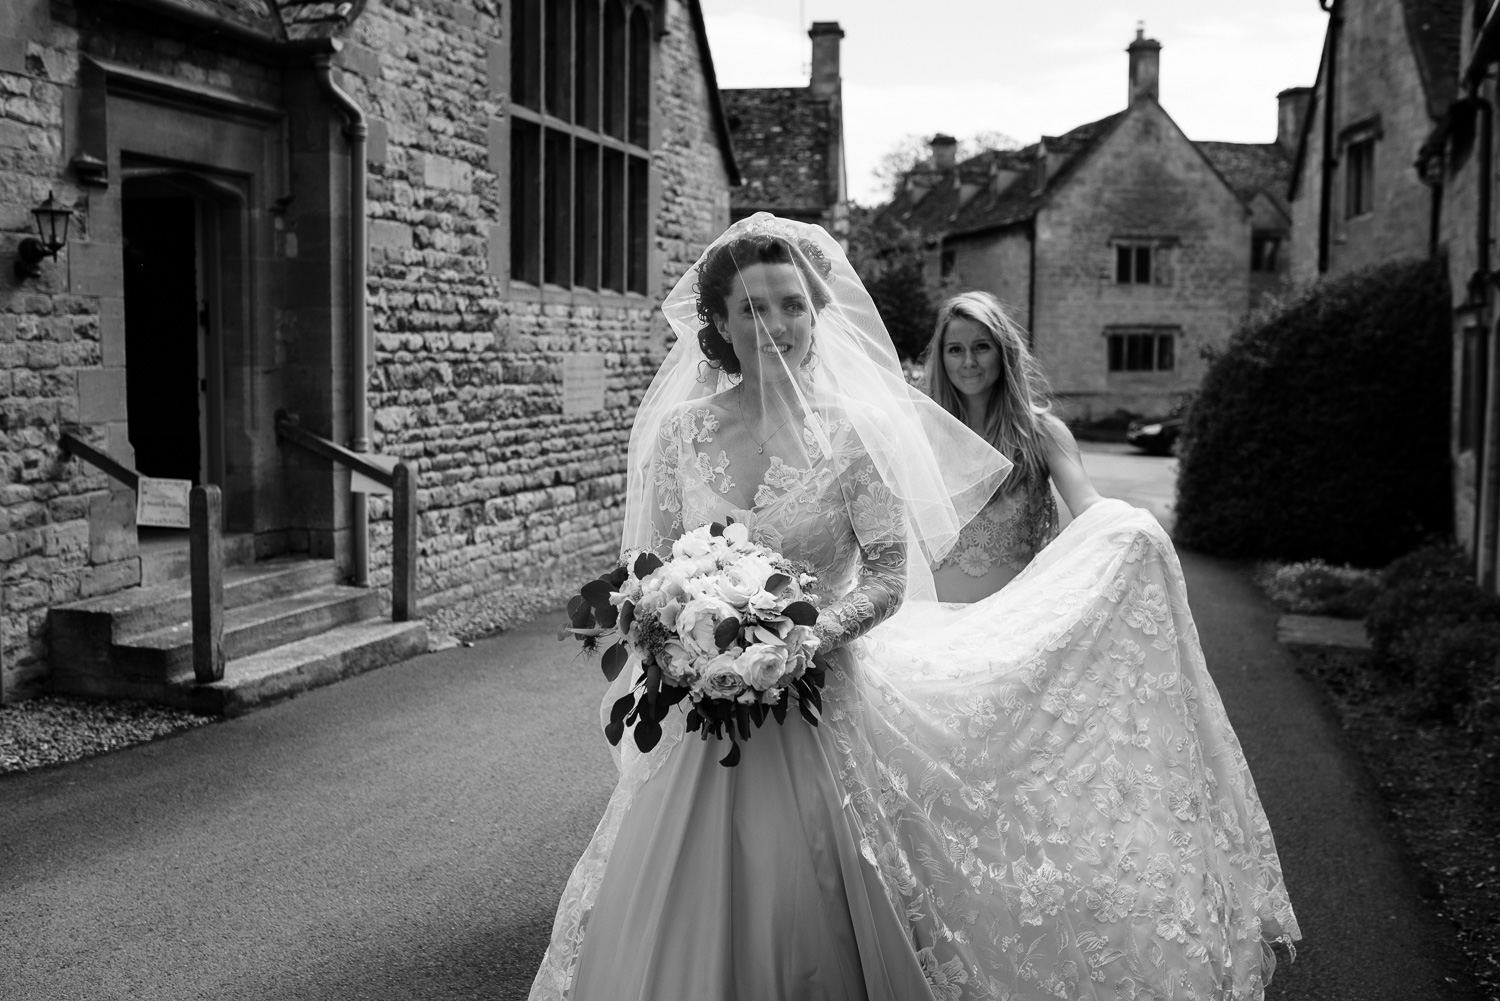 Bride arriving at Church in Stanton, Worcestershire.